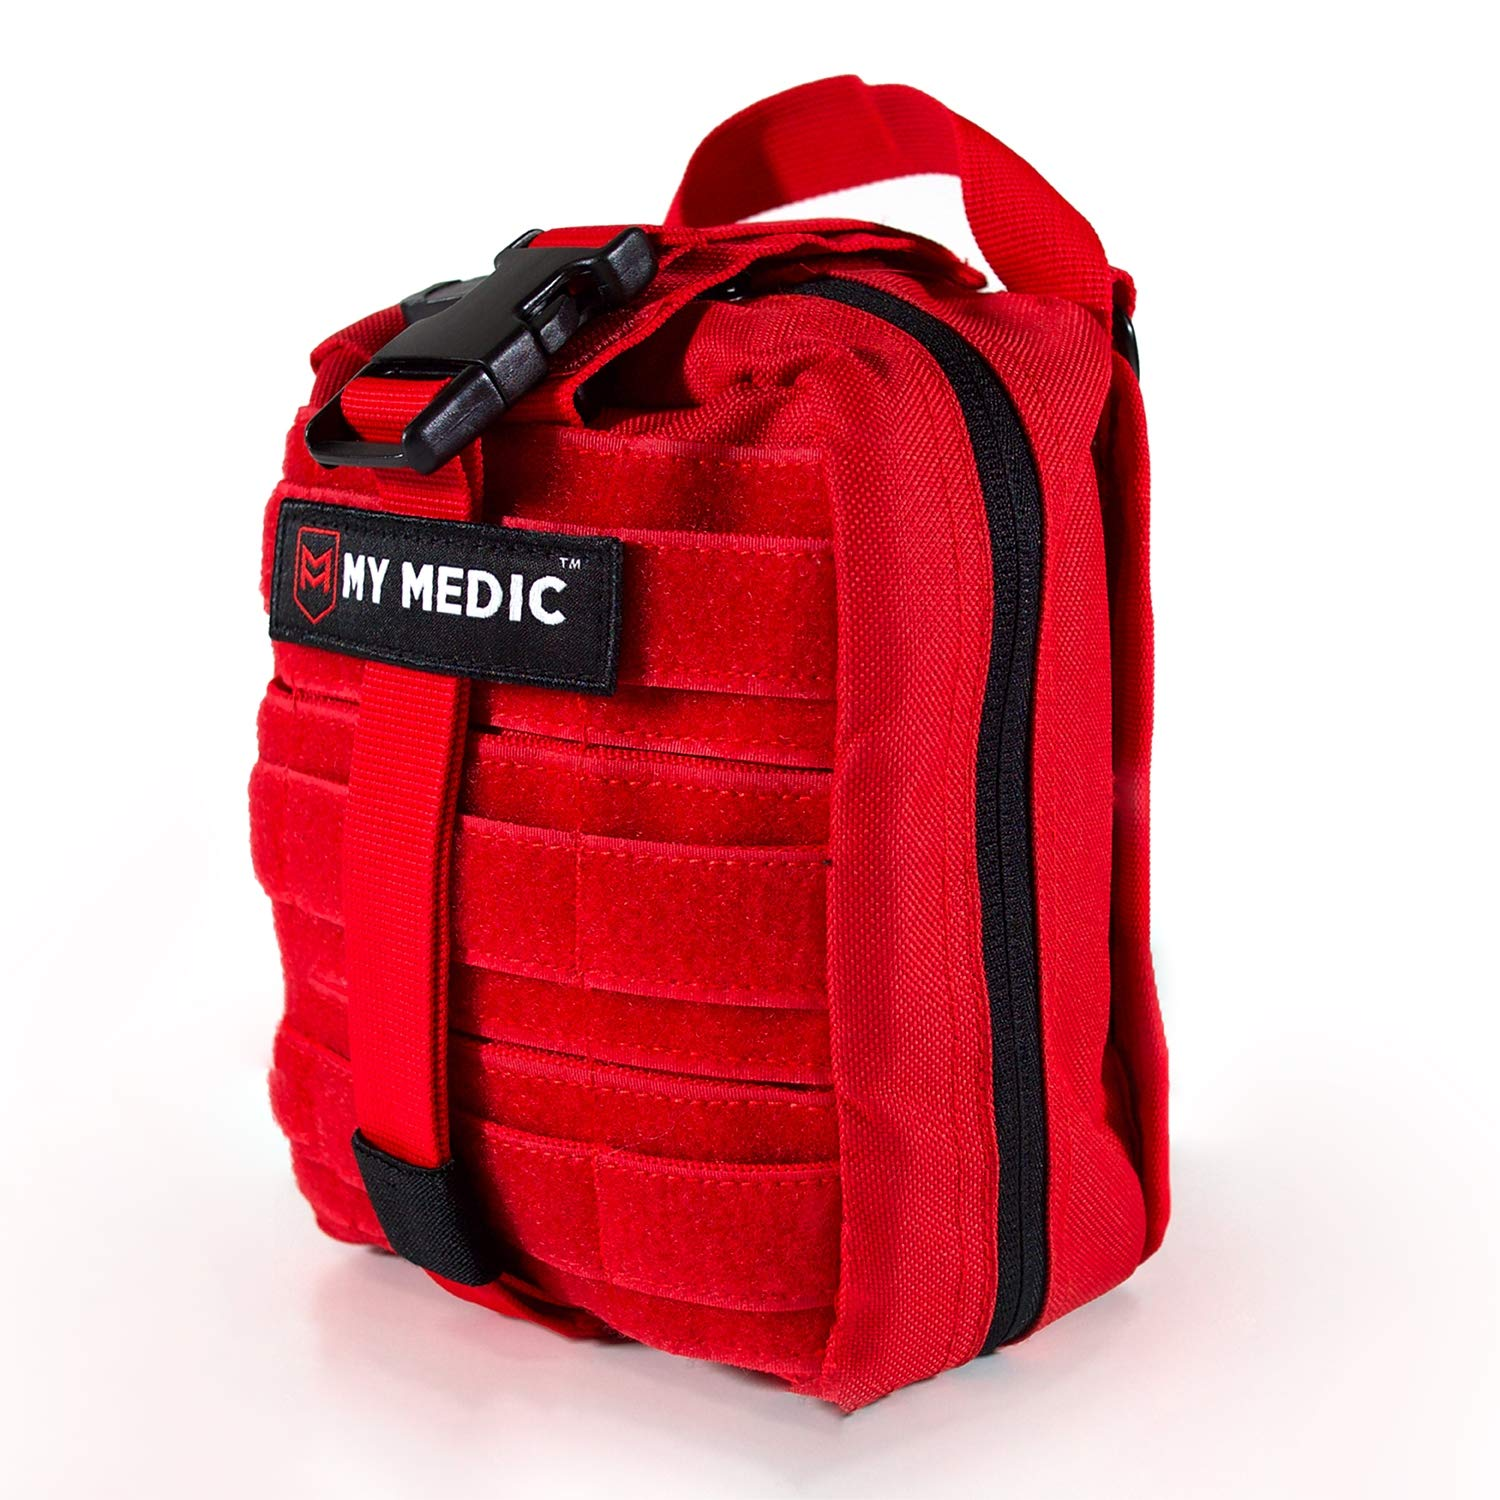 My Medic MyFak First Aid Kit - Water Resistant Bag, Bandages, Burn Aids, CPR Shield, Survival First Aid Kit, Airway, Tourniquet, Stainless Steel Instruments - Advanced - Red by My Medic